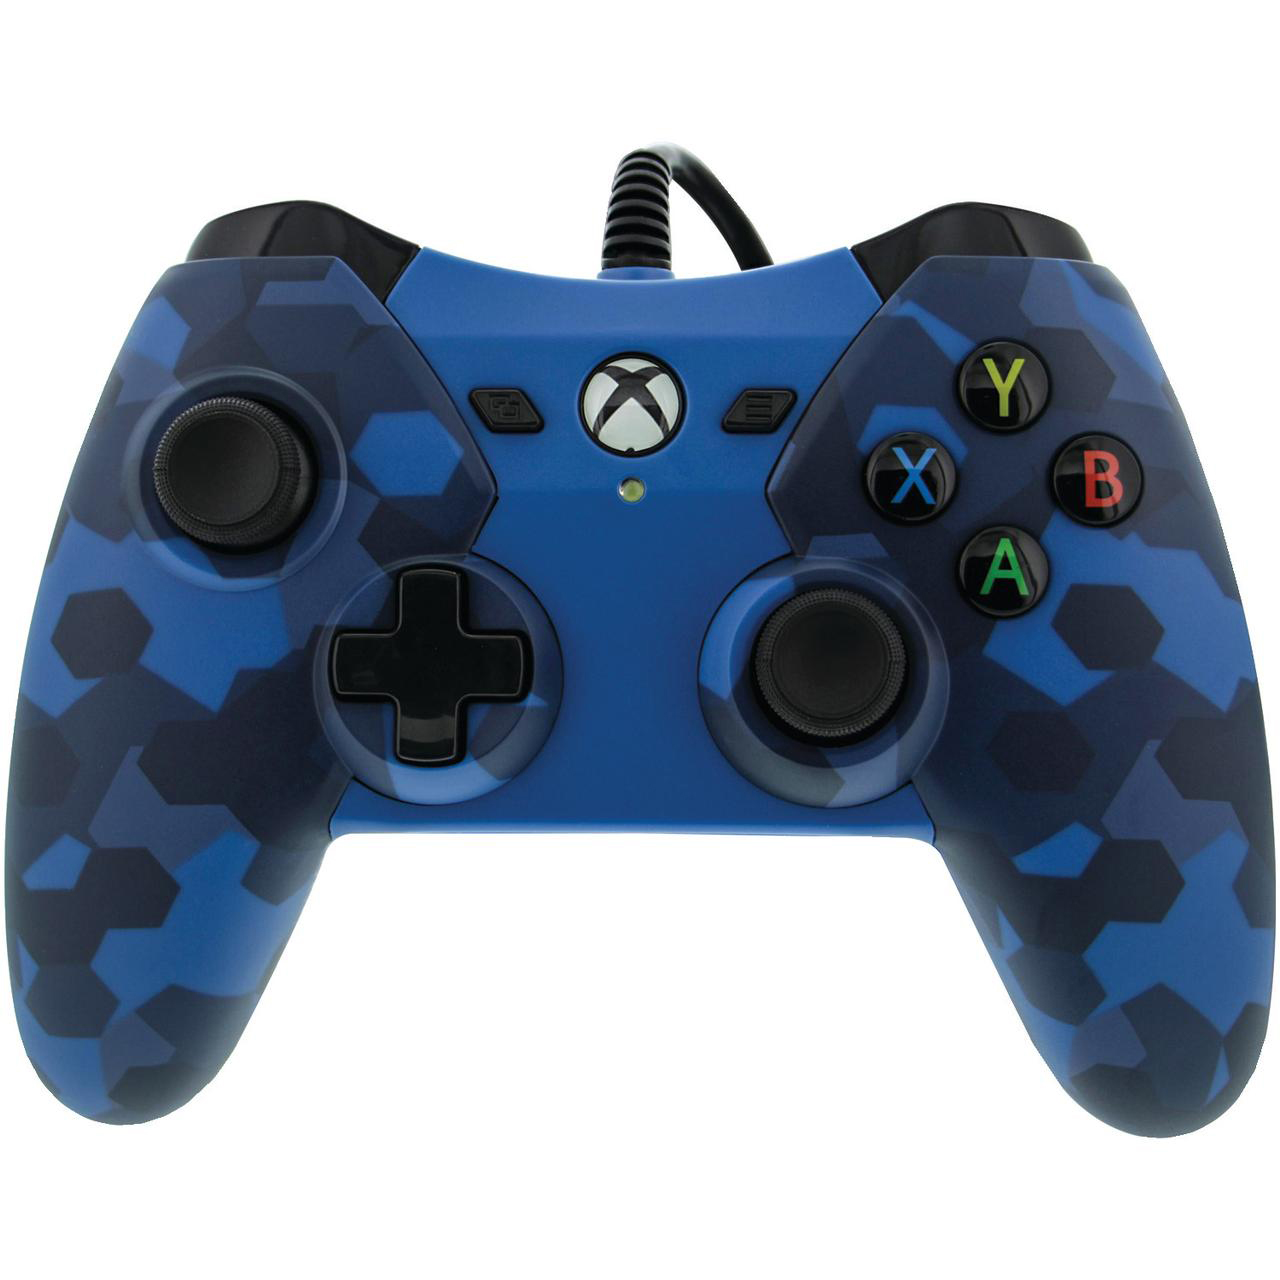 Pdp Camo Wired Controller For Xbox One Driver Windows 7: Xbox One Controllers - Walmart.comrh:walmart.com,Design